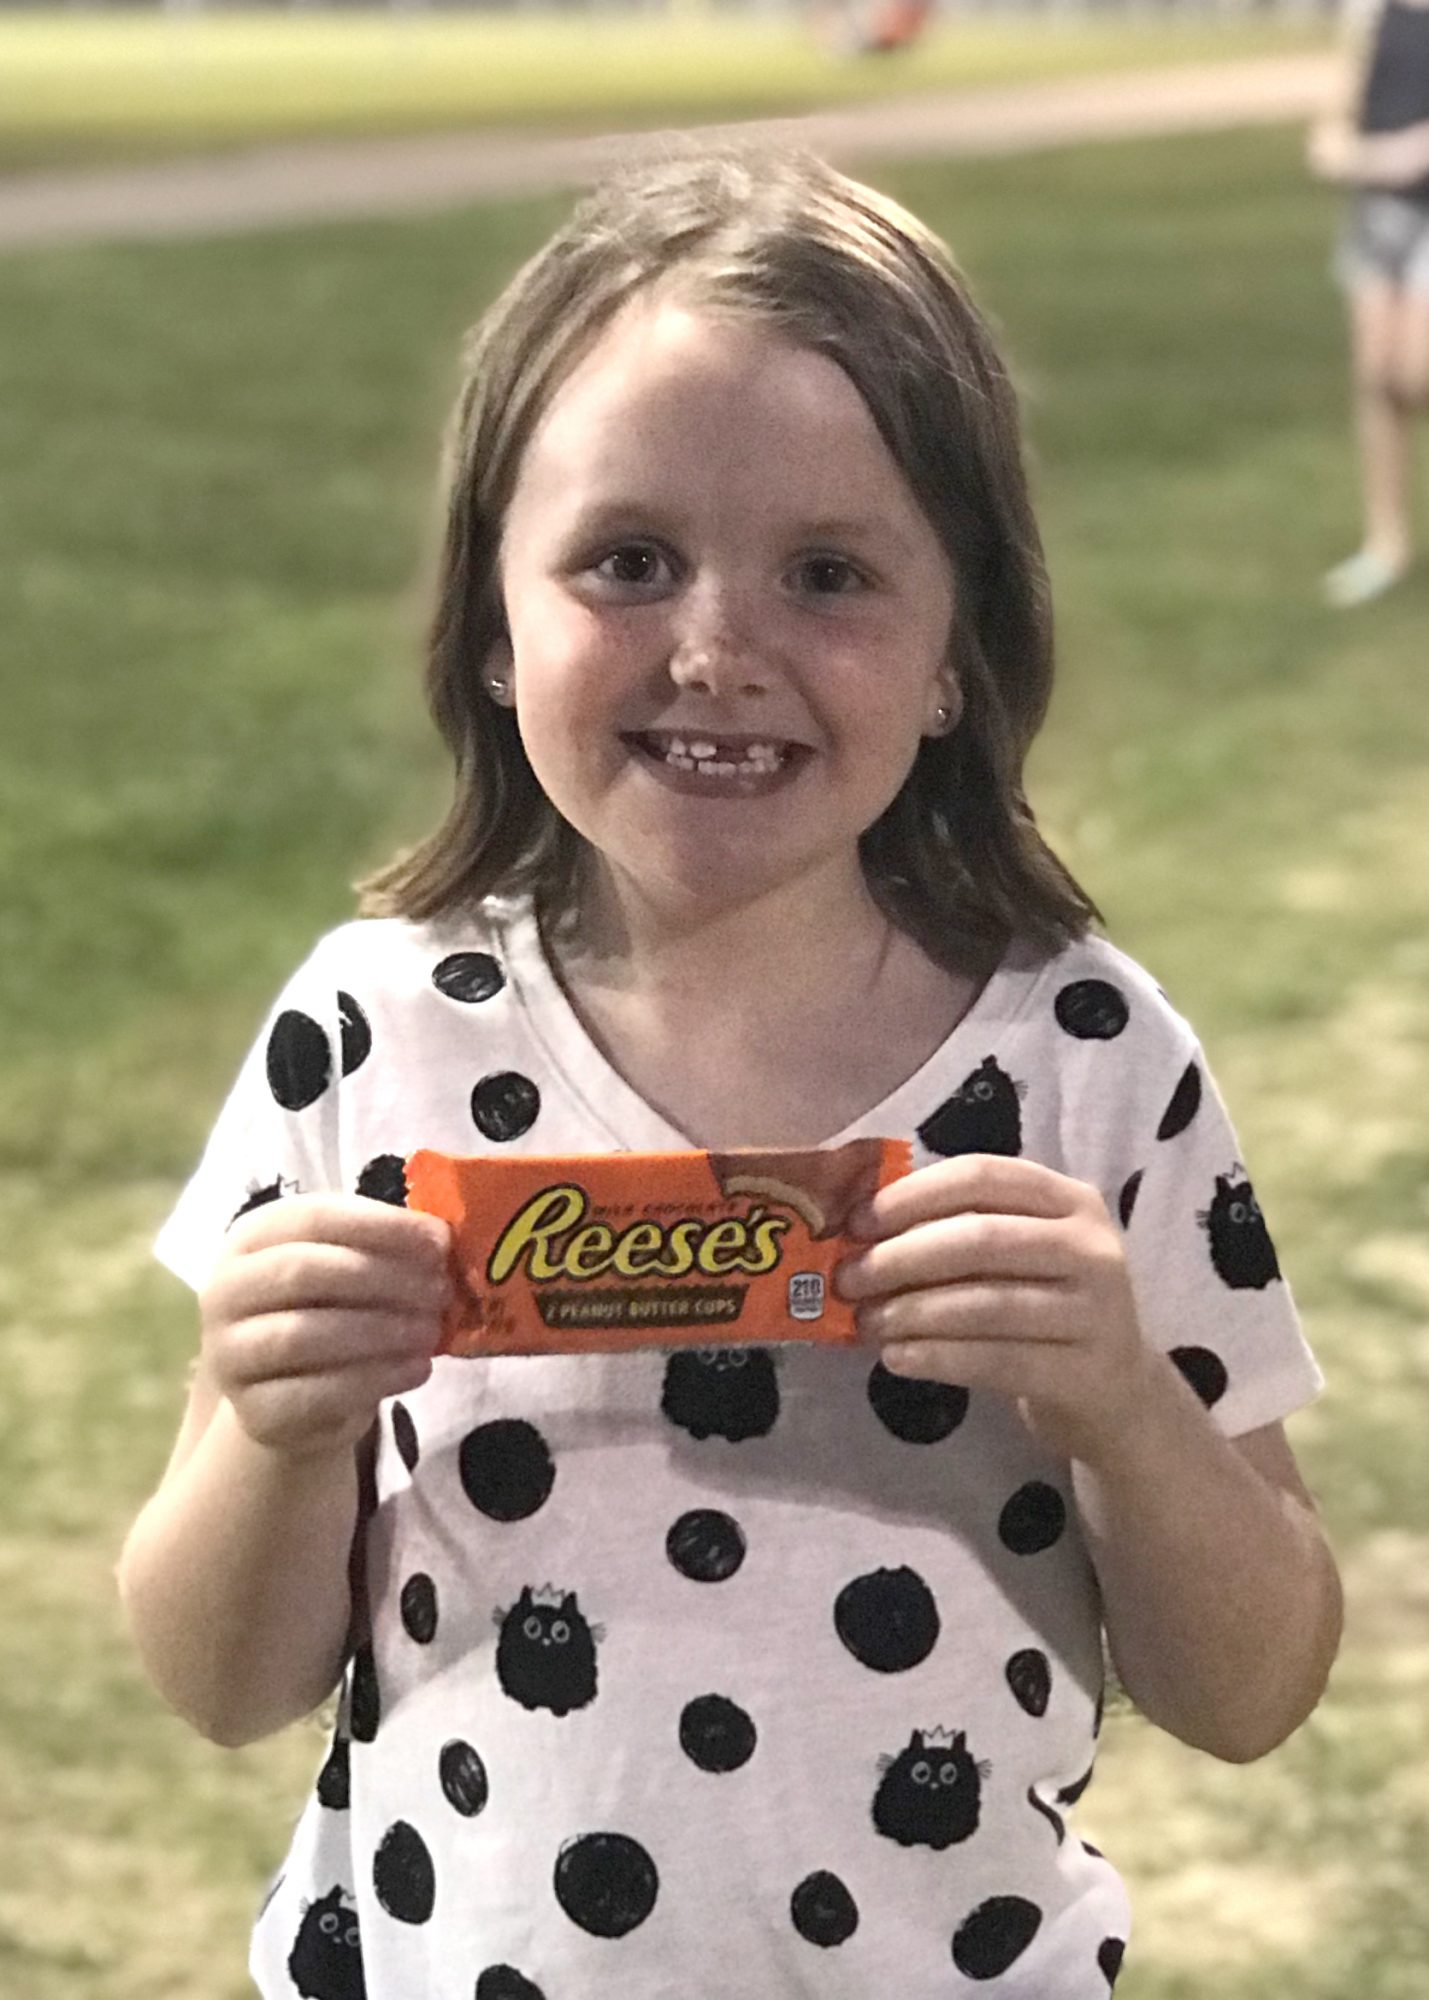 Couple Named Their Daughter Reese E. Cupp Because It's 'Our Favorite Candy' reese-e-cupp